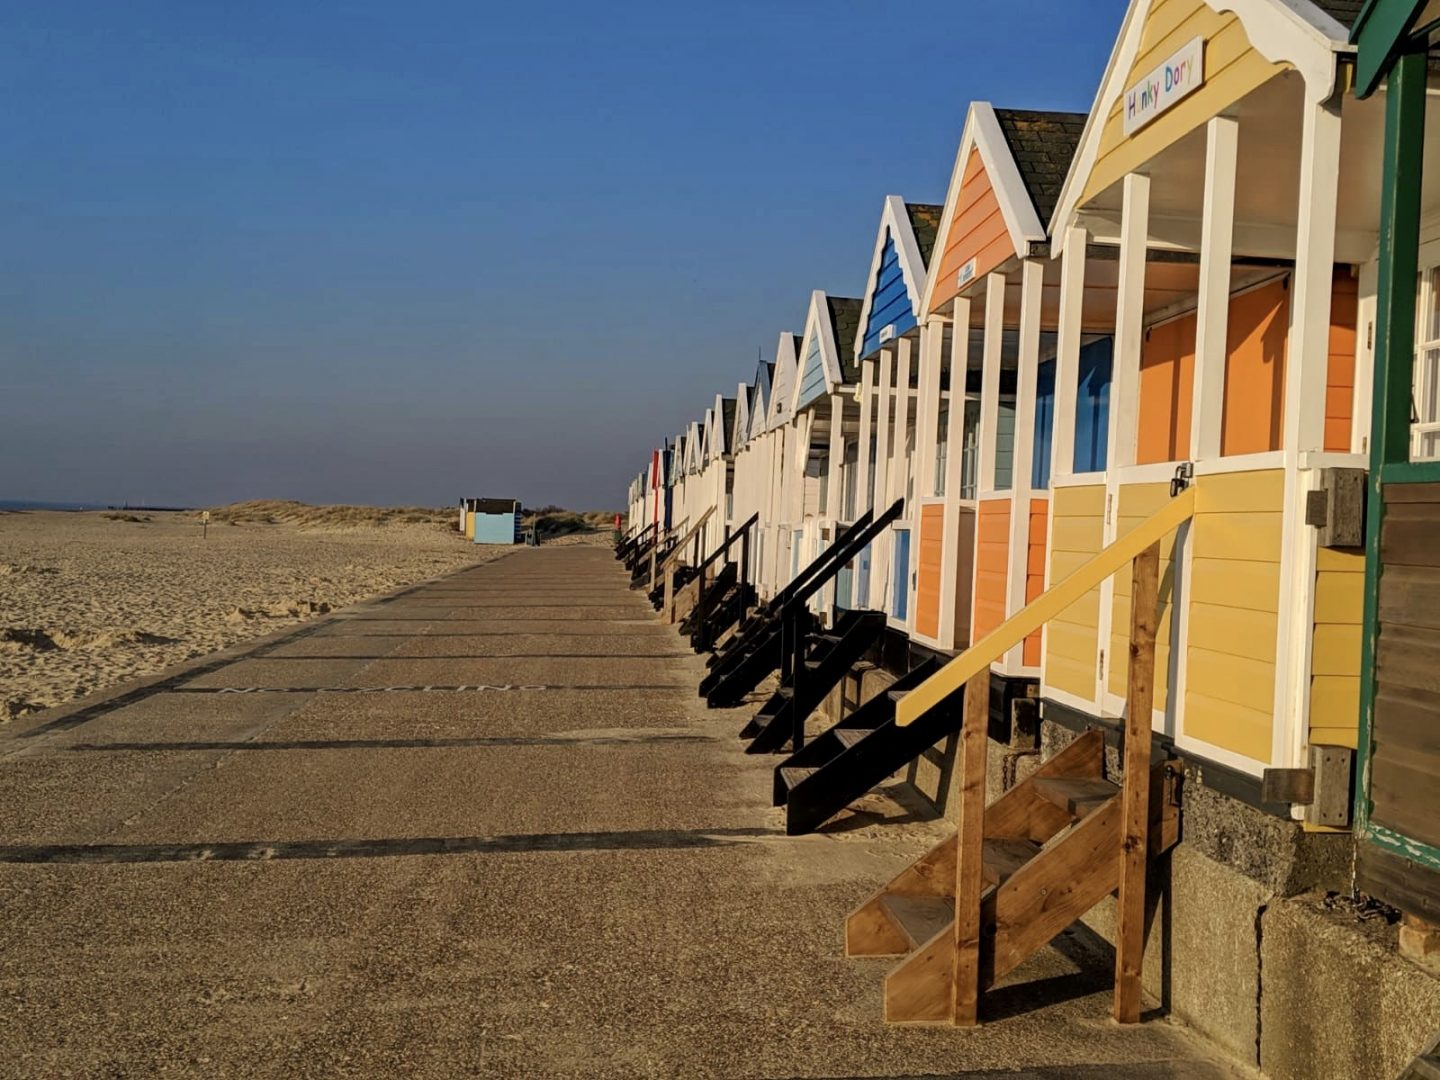 lockdown wine where to buy online: the beach huts in Southwold, where Adnams are based